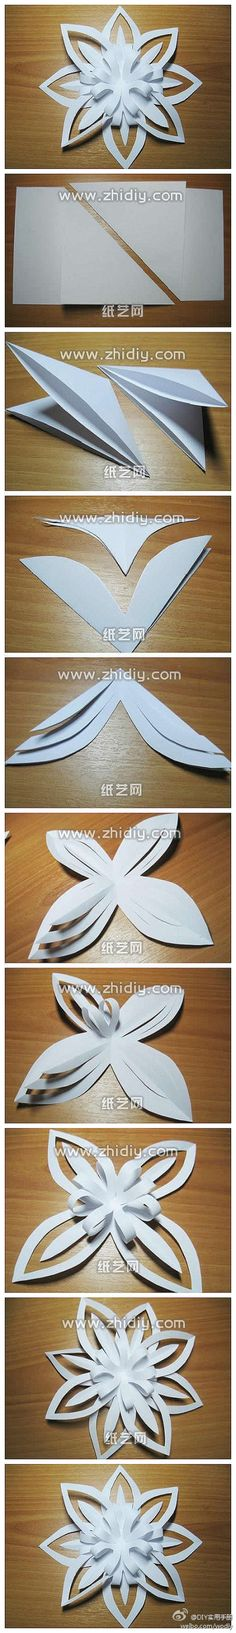 Origami Paper snowflakes tutorial are a great paper craft to try out for Christmas. Who doesn't love making Christmas decorations? Now you can learn how to make snowflakes that are different than your typical ones every year. Holiday Crafts, Fun Crafts, Diy And Crafts, Christmas Crafts, Crafts For Kids, Arts And Crafts, Christmas Decorations, Xmas, Christmas Paper